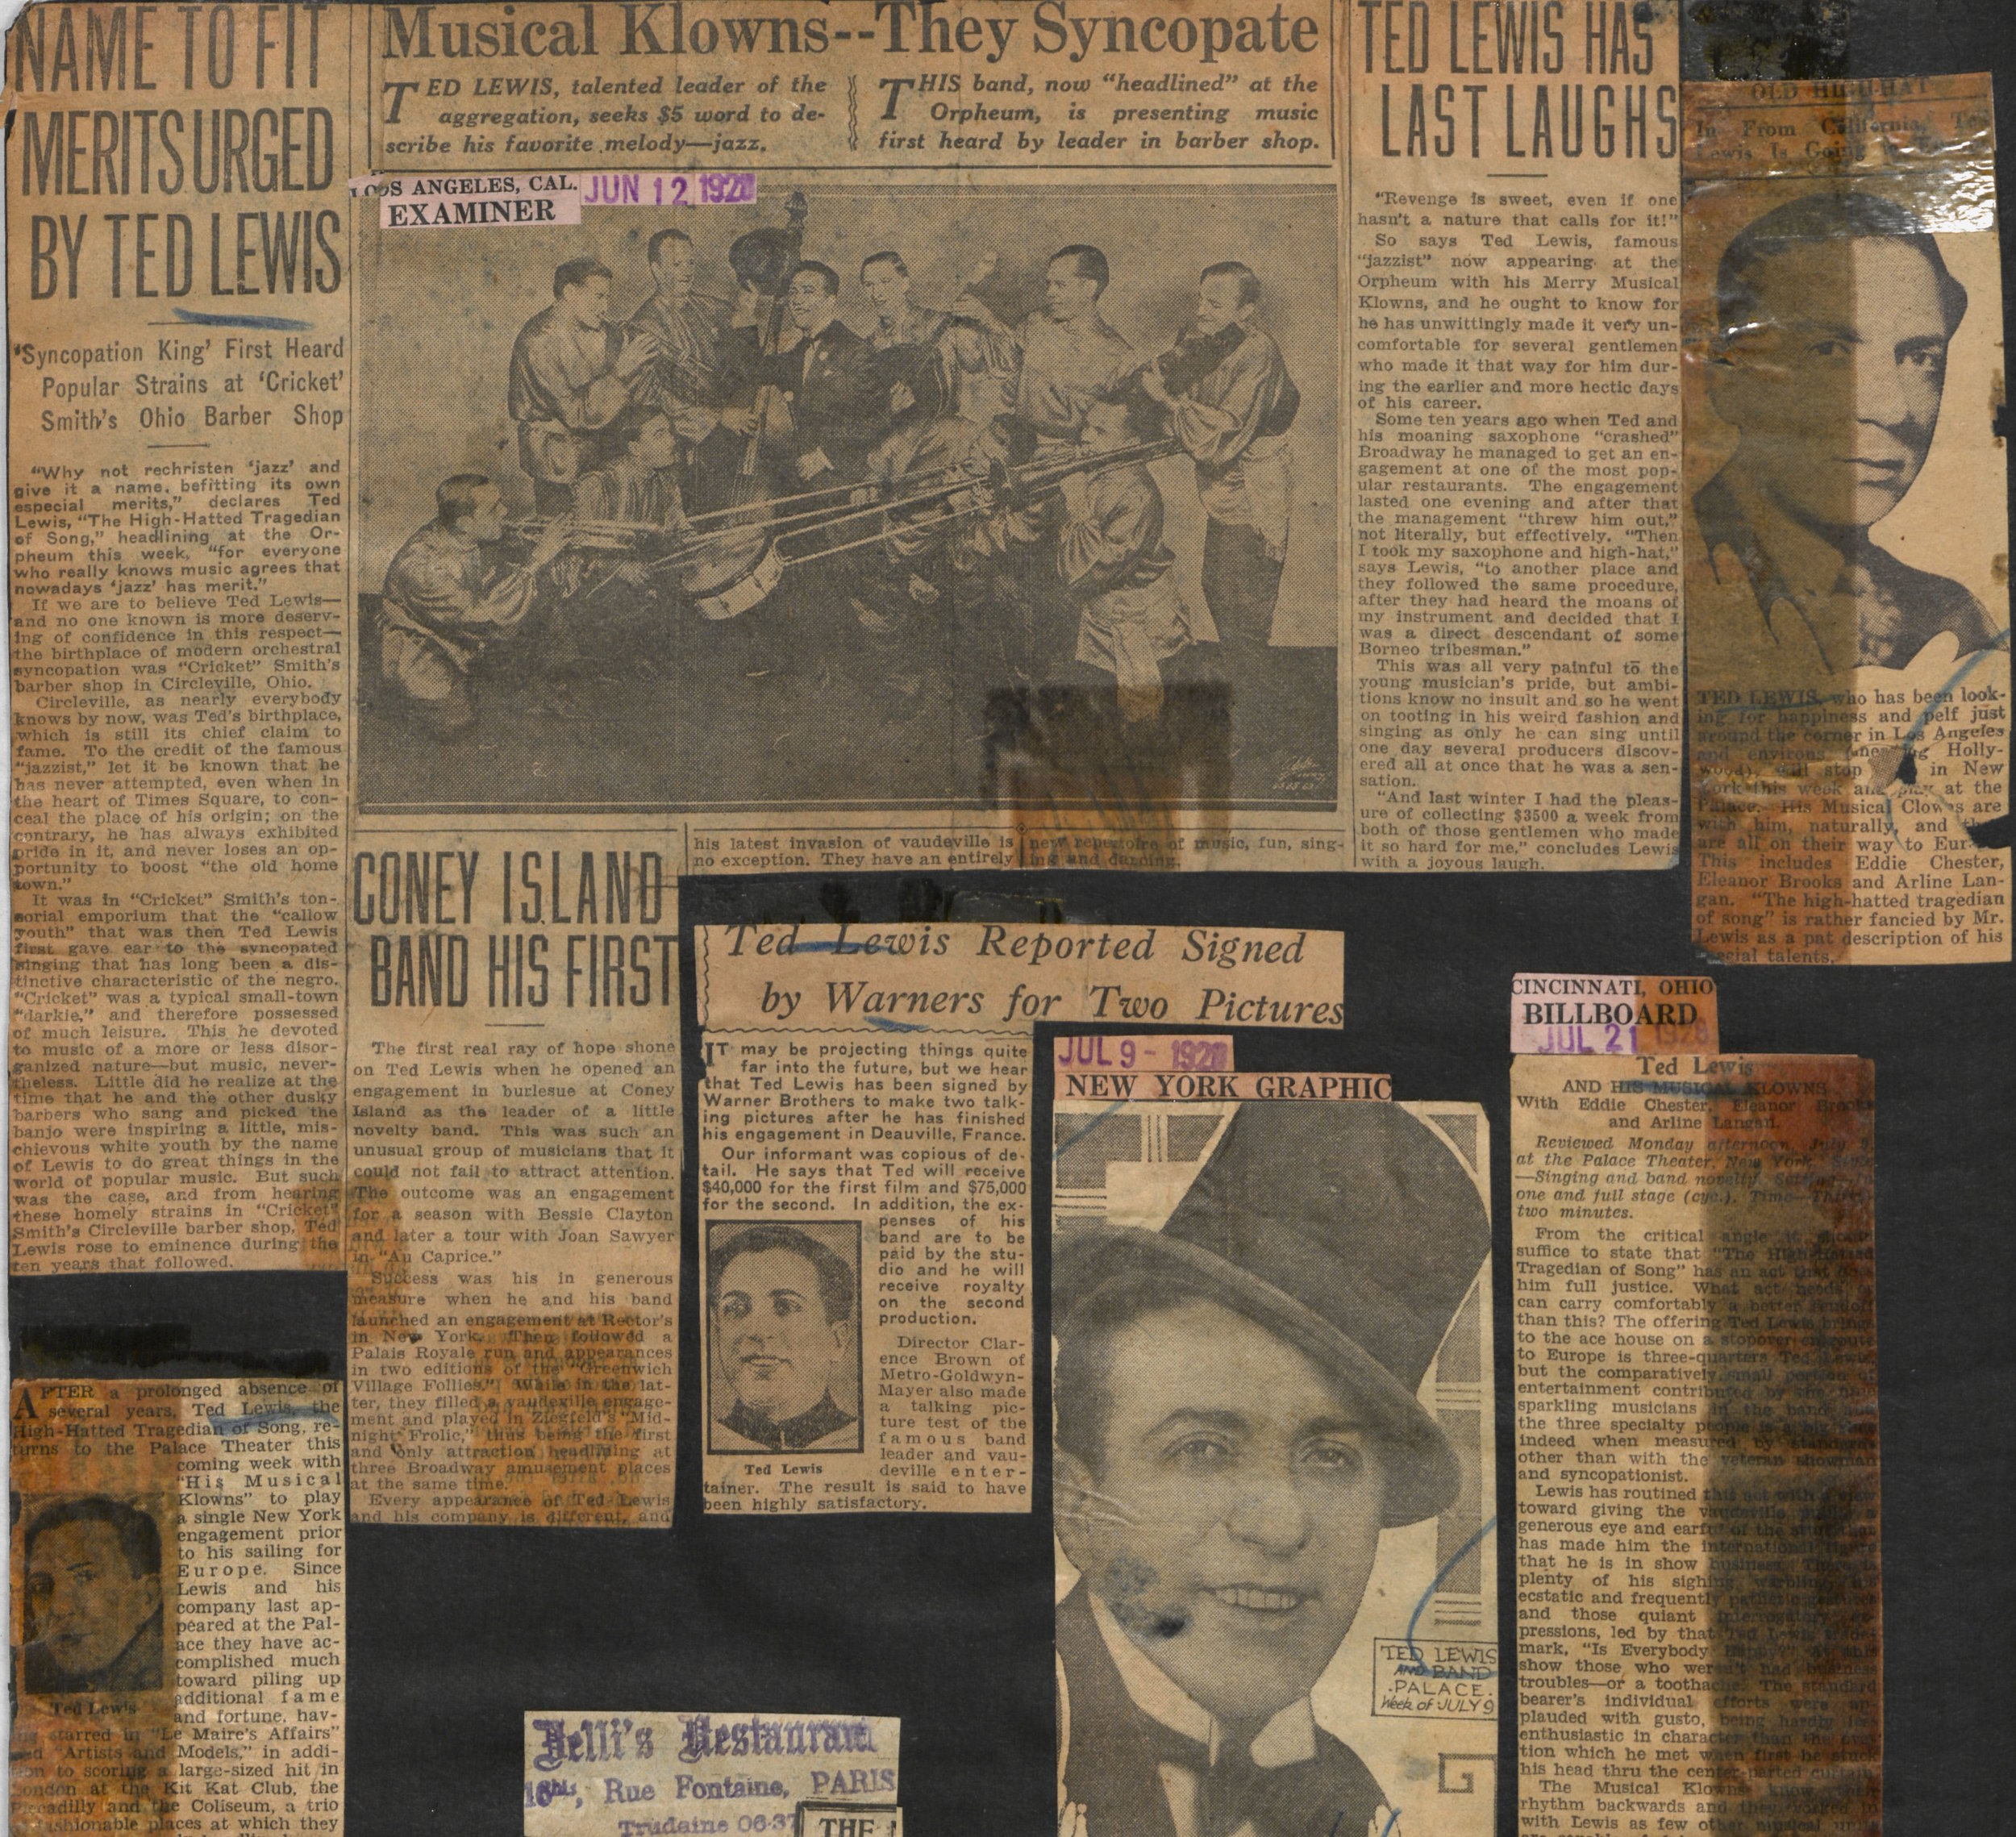 LewisScrapbook_V2_057 copy.jpg